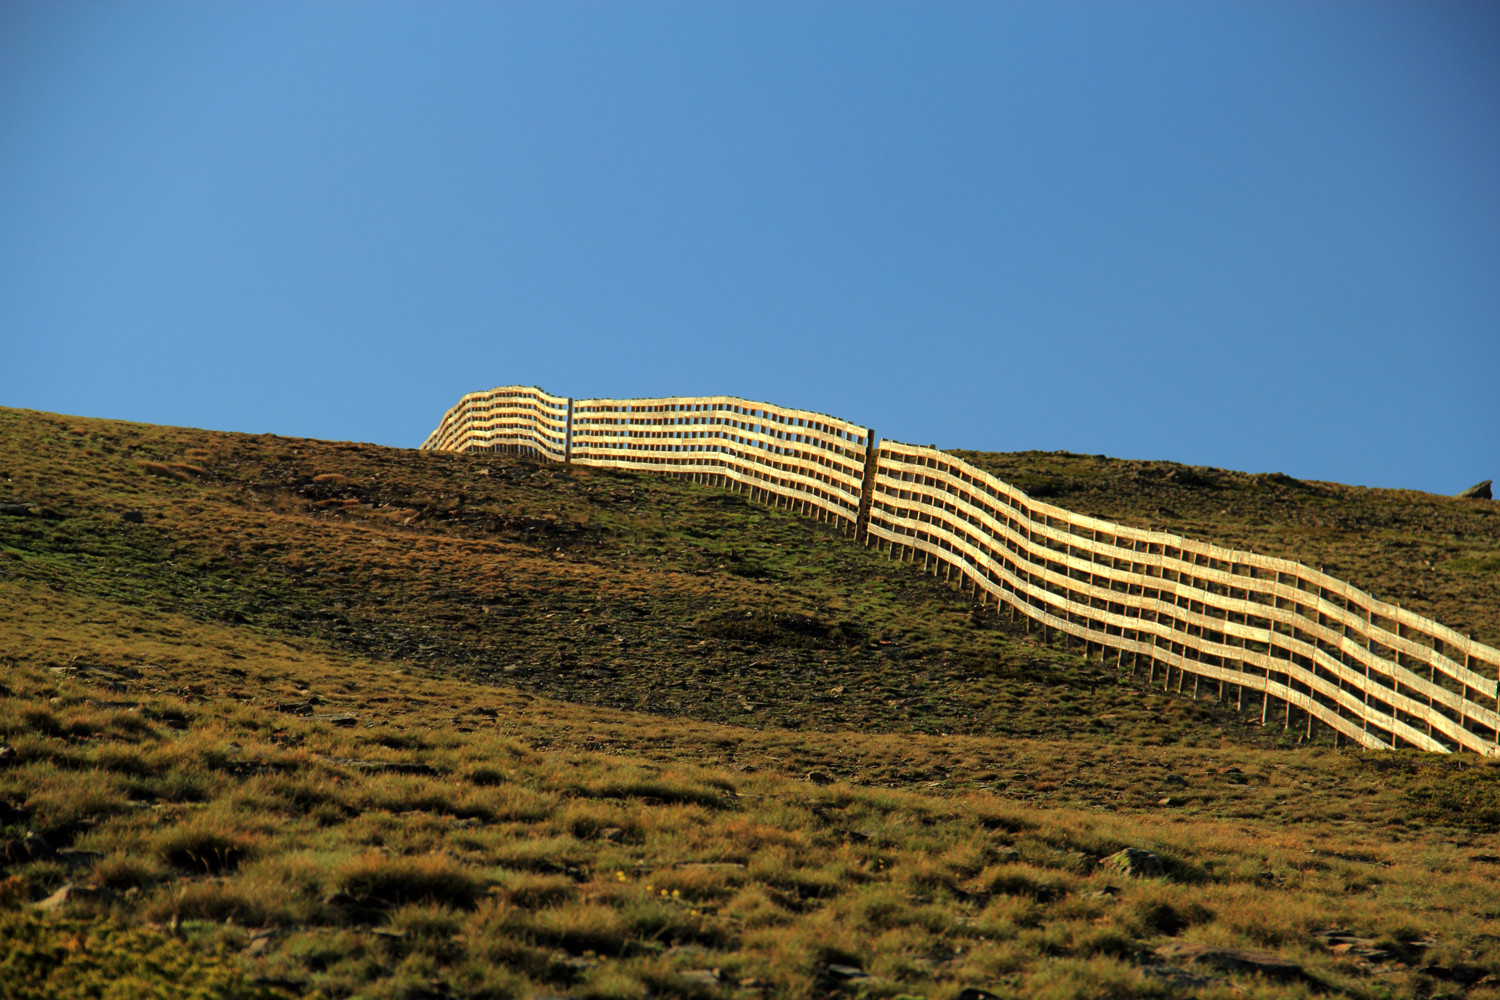 """The Fence"" - PN Sierra de Nevada, Granada - LS06299"